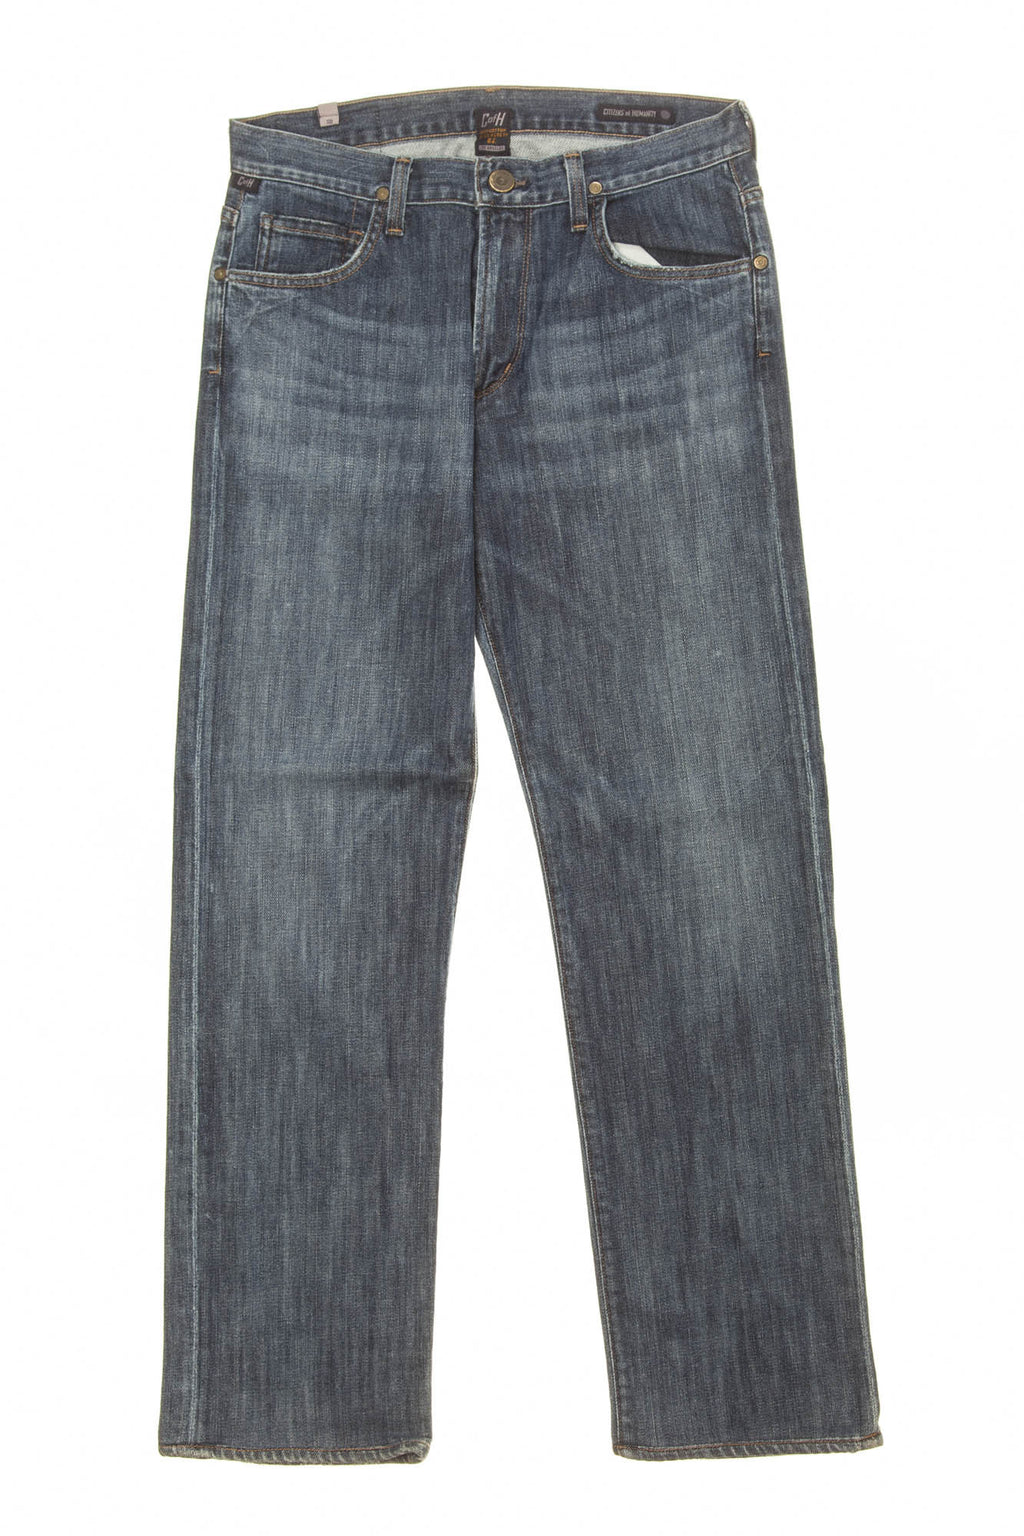 Citizens of Humanity - Dark Blue Denim Jeans - 31